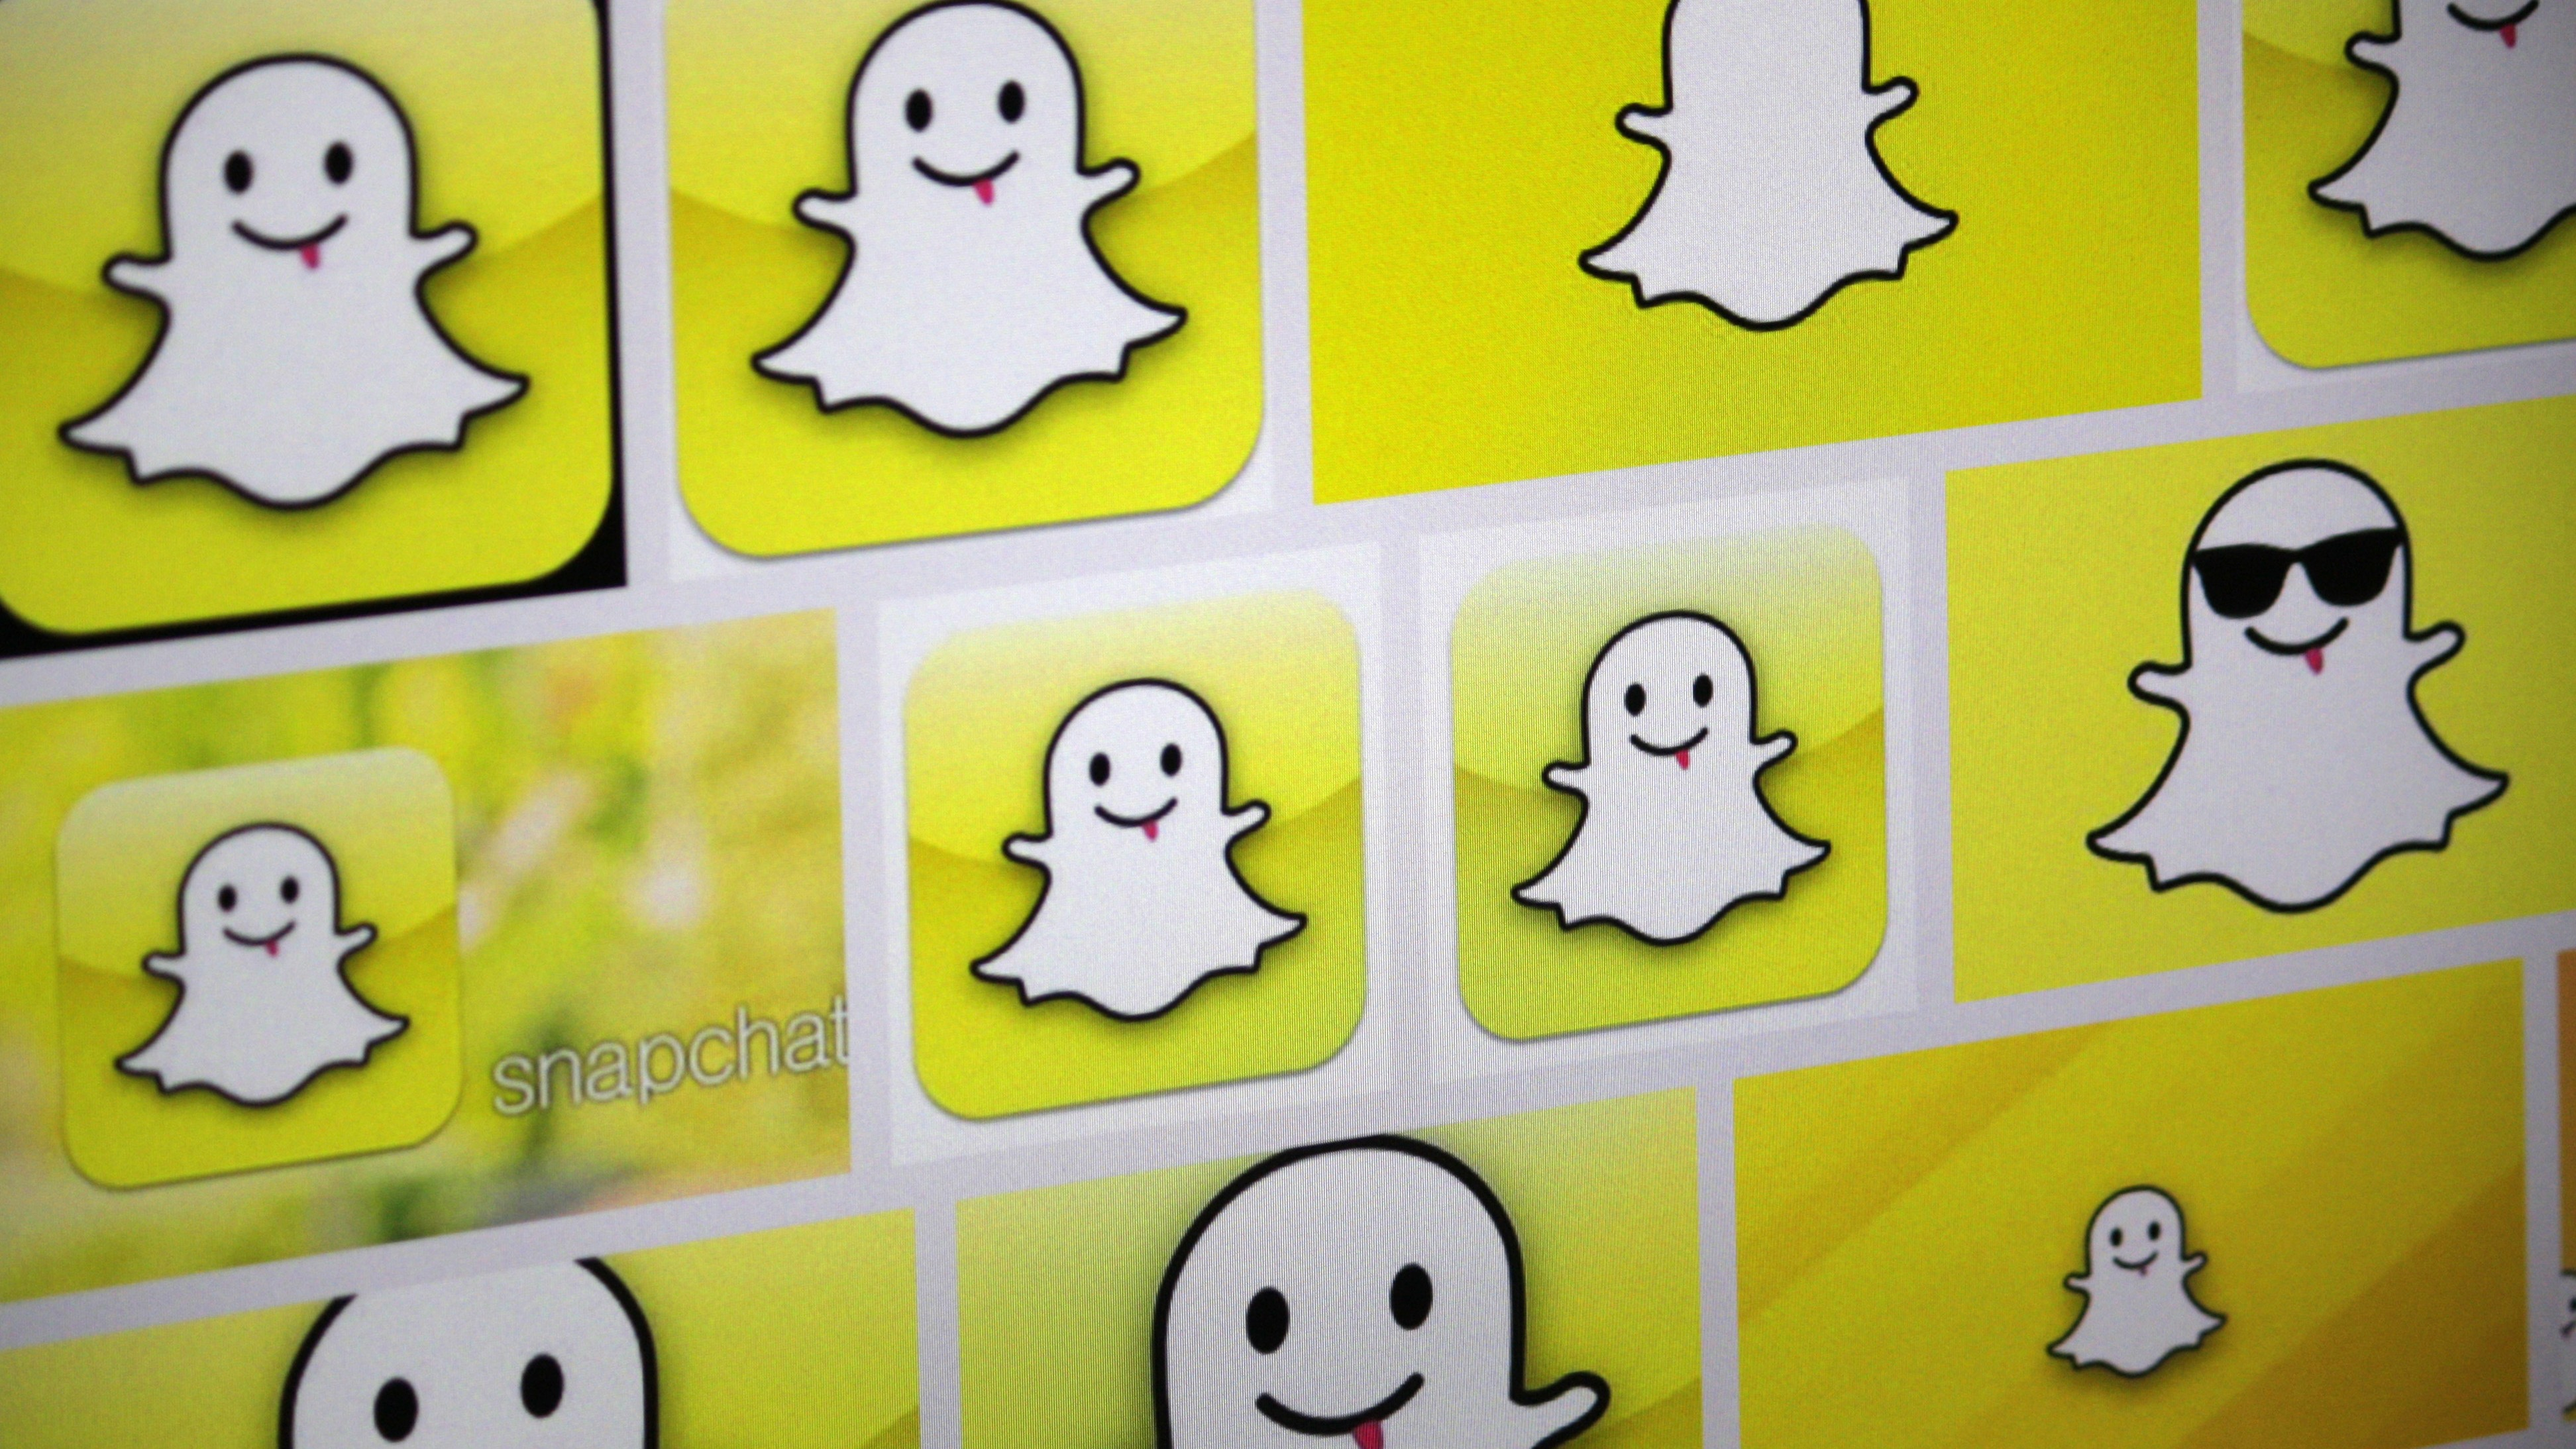 How Snapchat's Lack of a 'Save' Feature Compromises Its Users